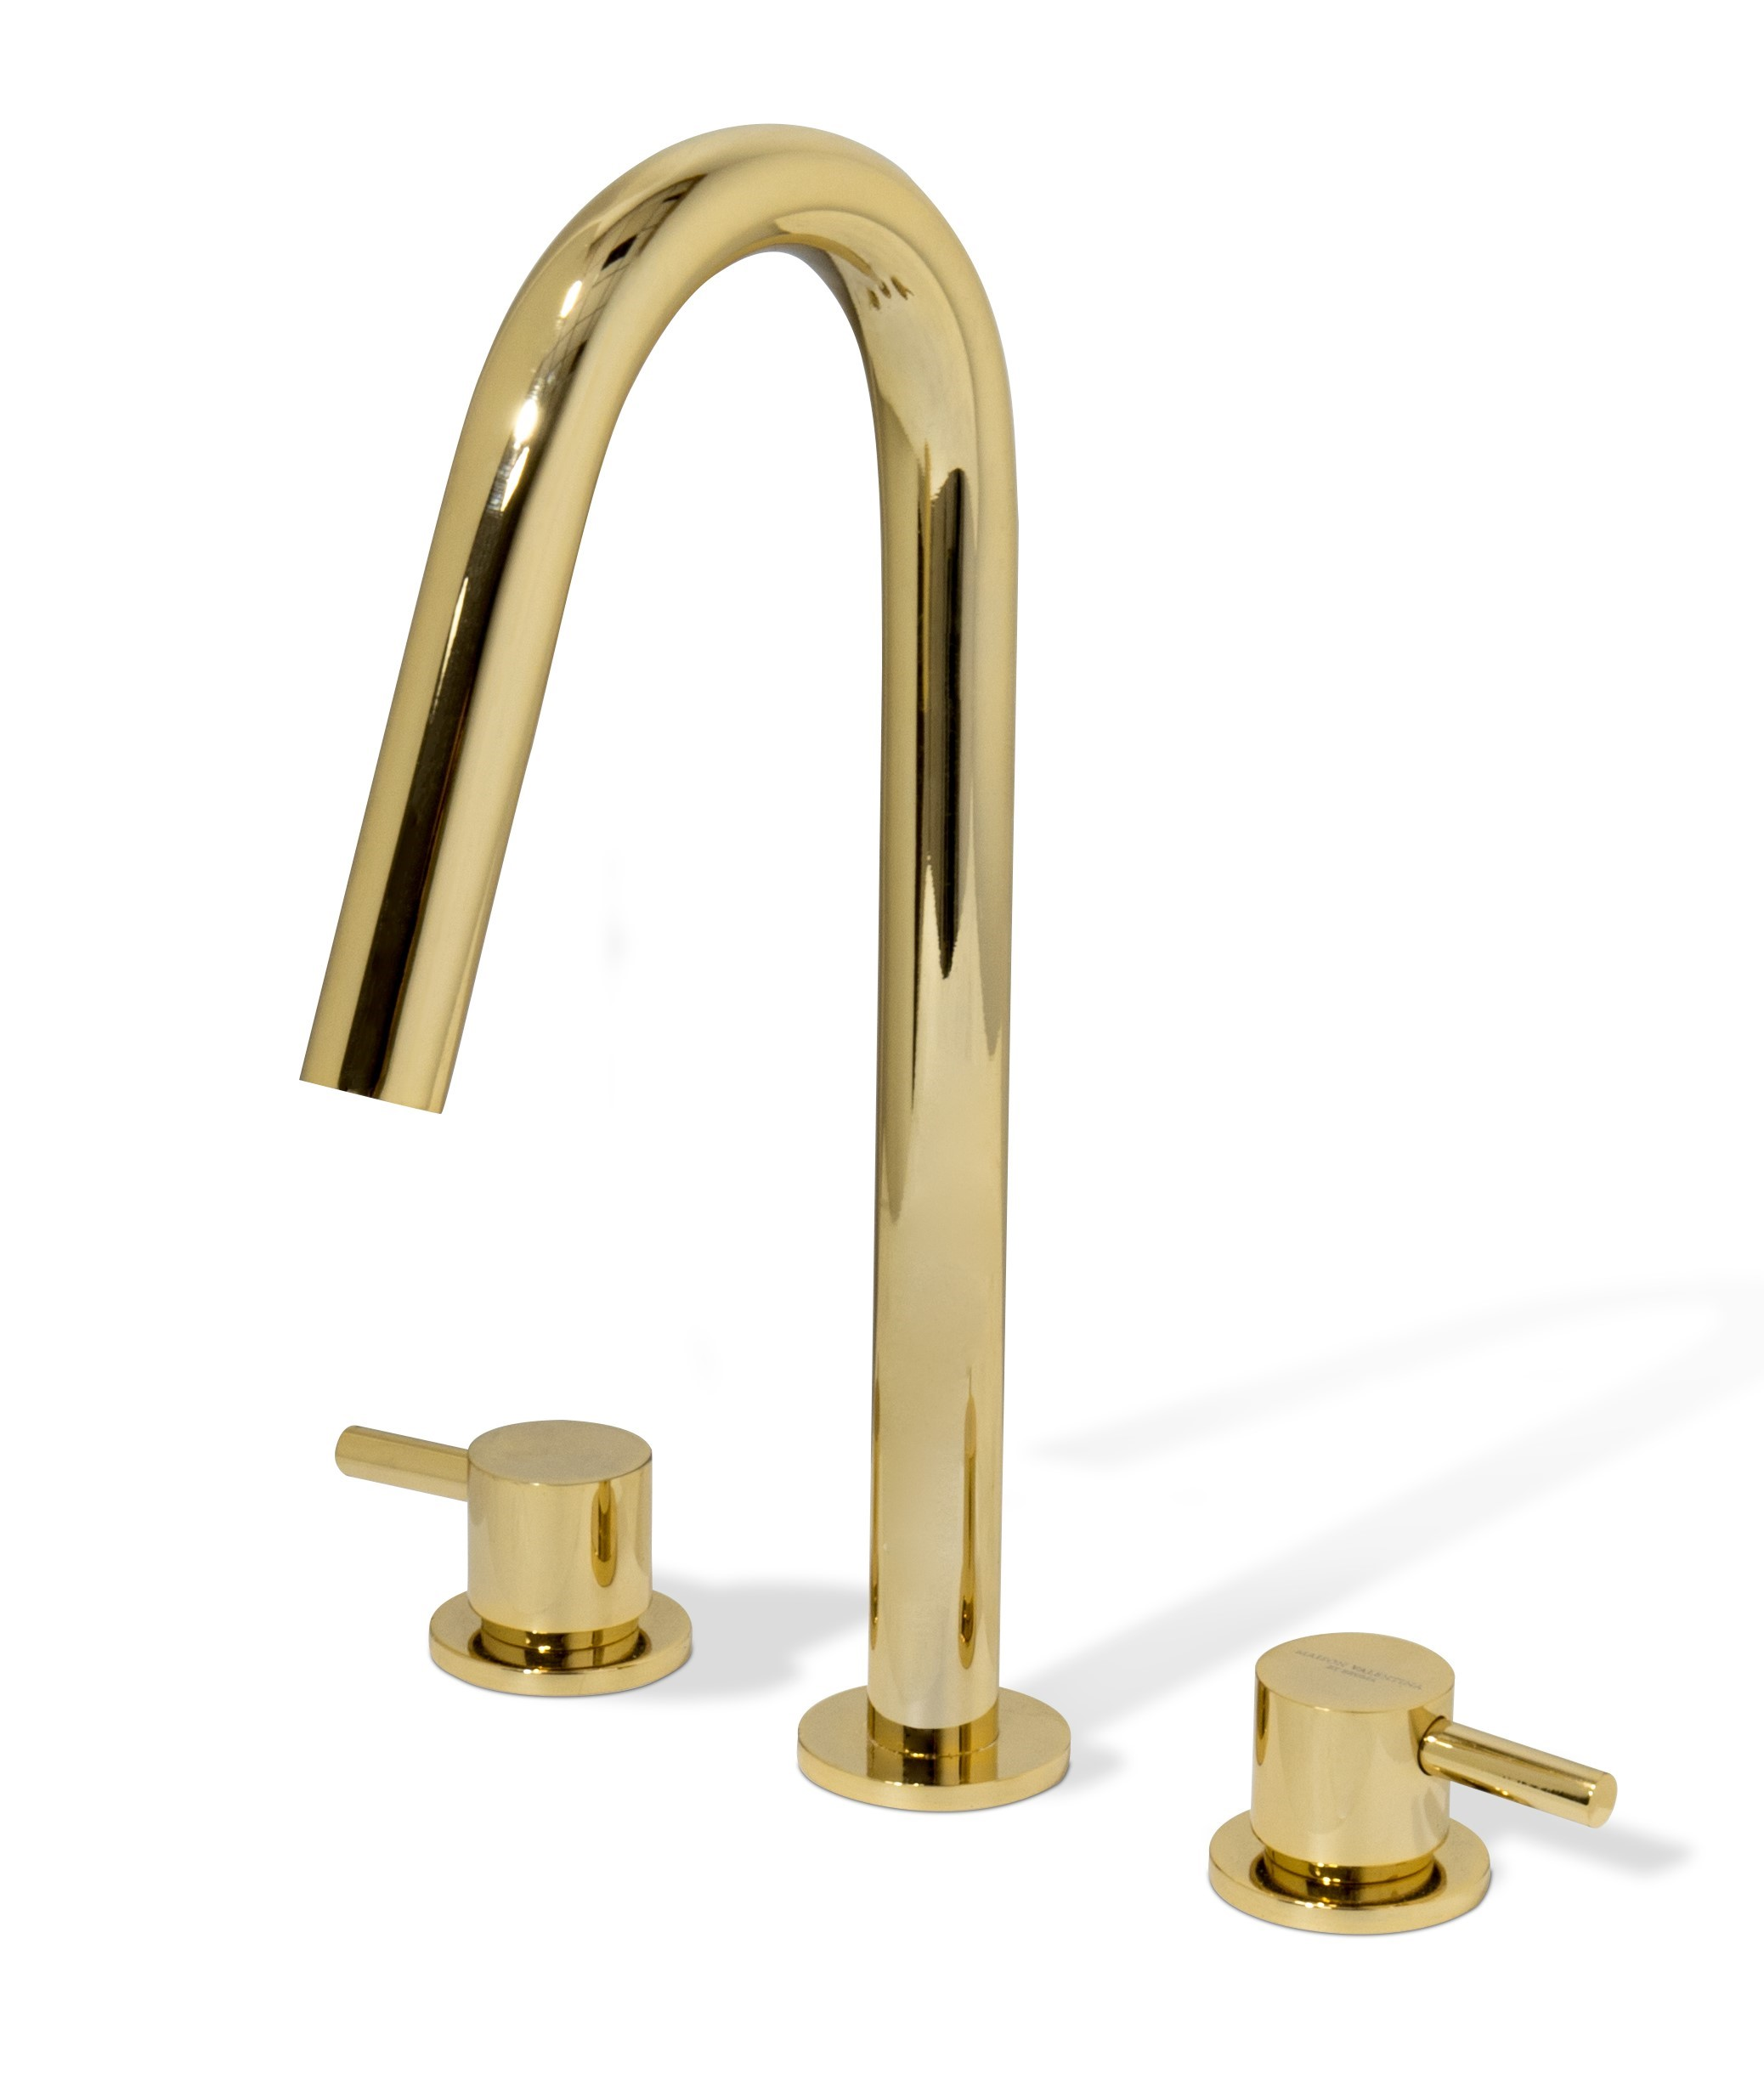 bathroom, golden bathroom, gold,maison valentina, bathub, mirror, rug, tap, bathroom decoration, bathroom decor  5 Ideas to Add a Touch of Gold to Your Bathroom ouch of gold to your bathroom 5 ideas to add a origin three hole mixer tap 1 HR 3